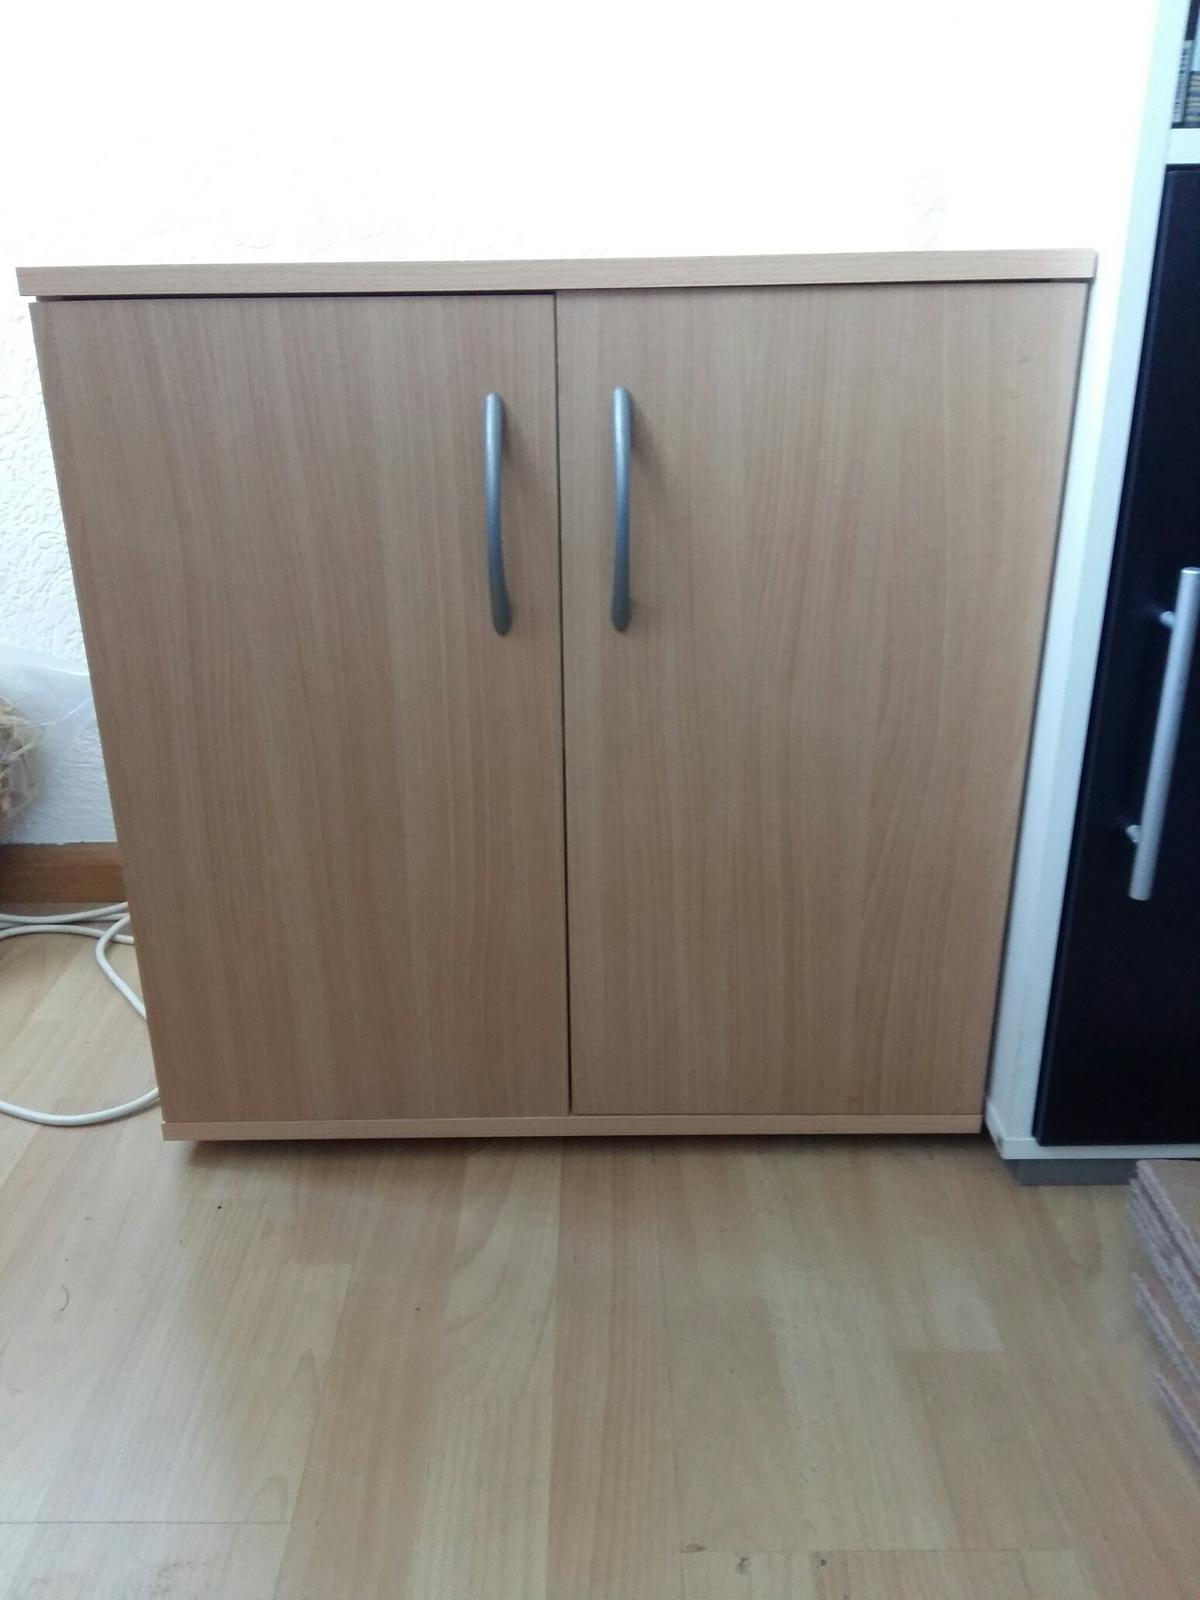 Schrank Peggy Von Poco In 47198 Duisburg For Free For Sale Shpock